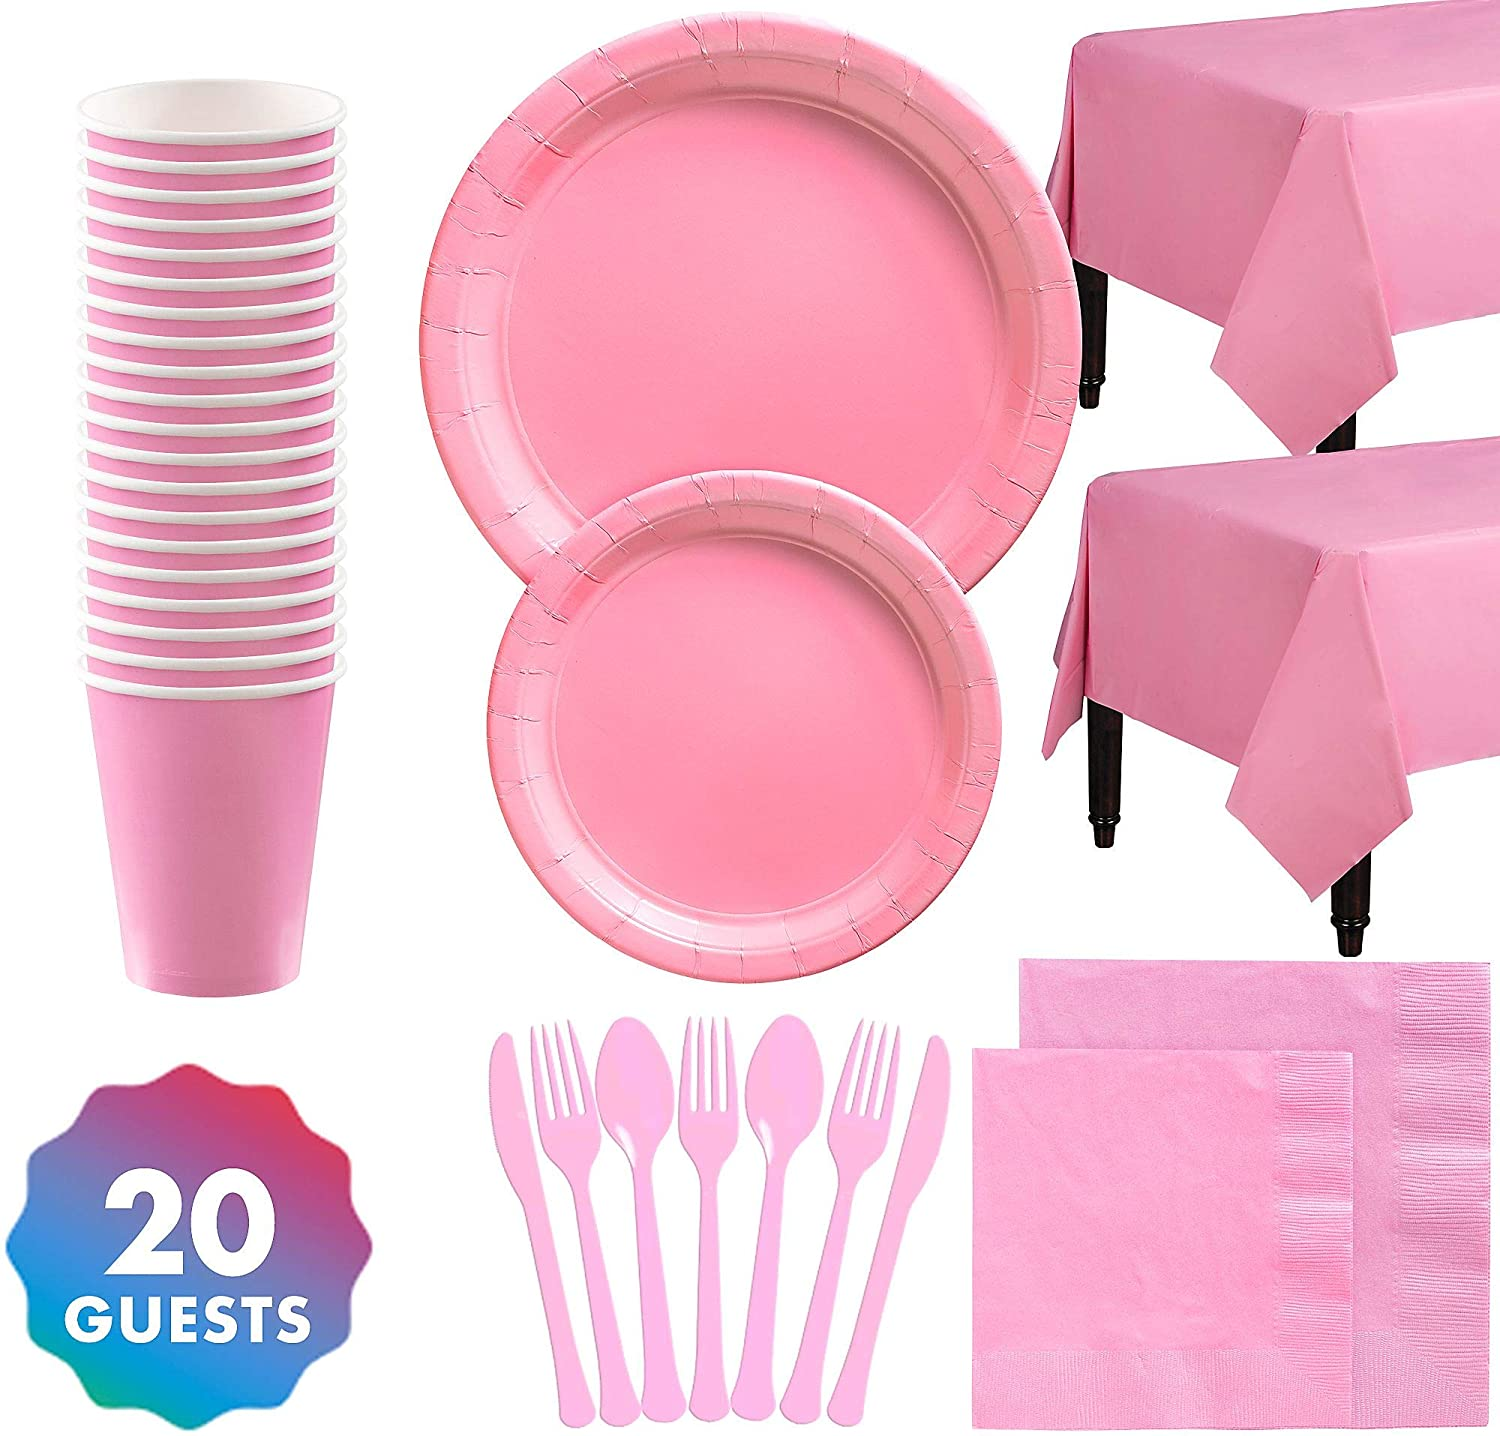 Party City Solid Pink Party Tableware Supplies for 20 Guests, with Plates, Napkins, Cups, Utensils, and Table Covers